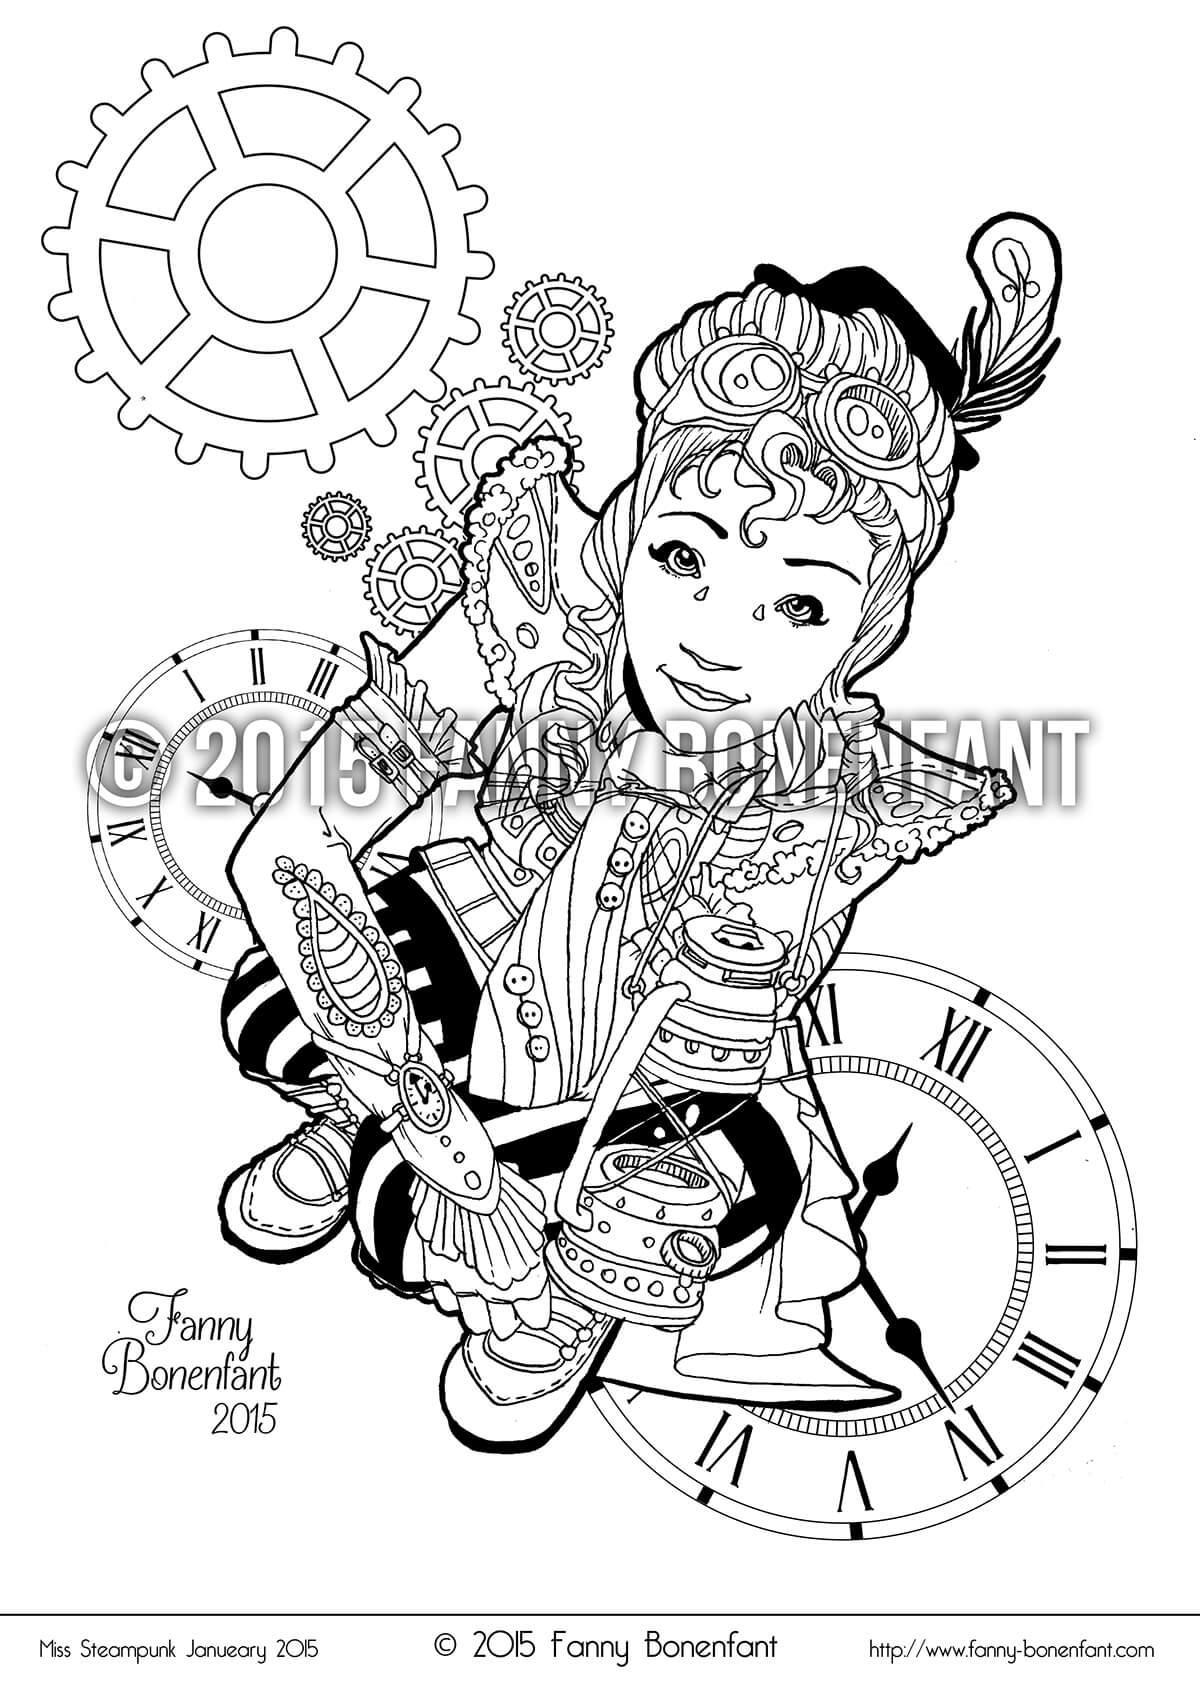 steampunk pin up january 2015 coloriage dtente et fun - Coloriage Dtente